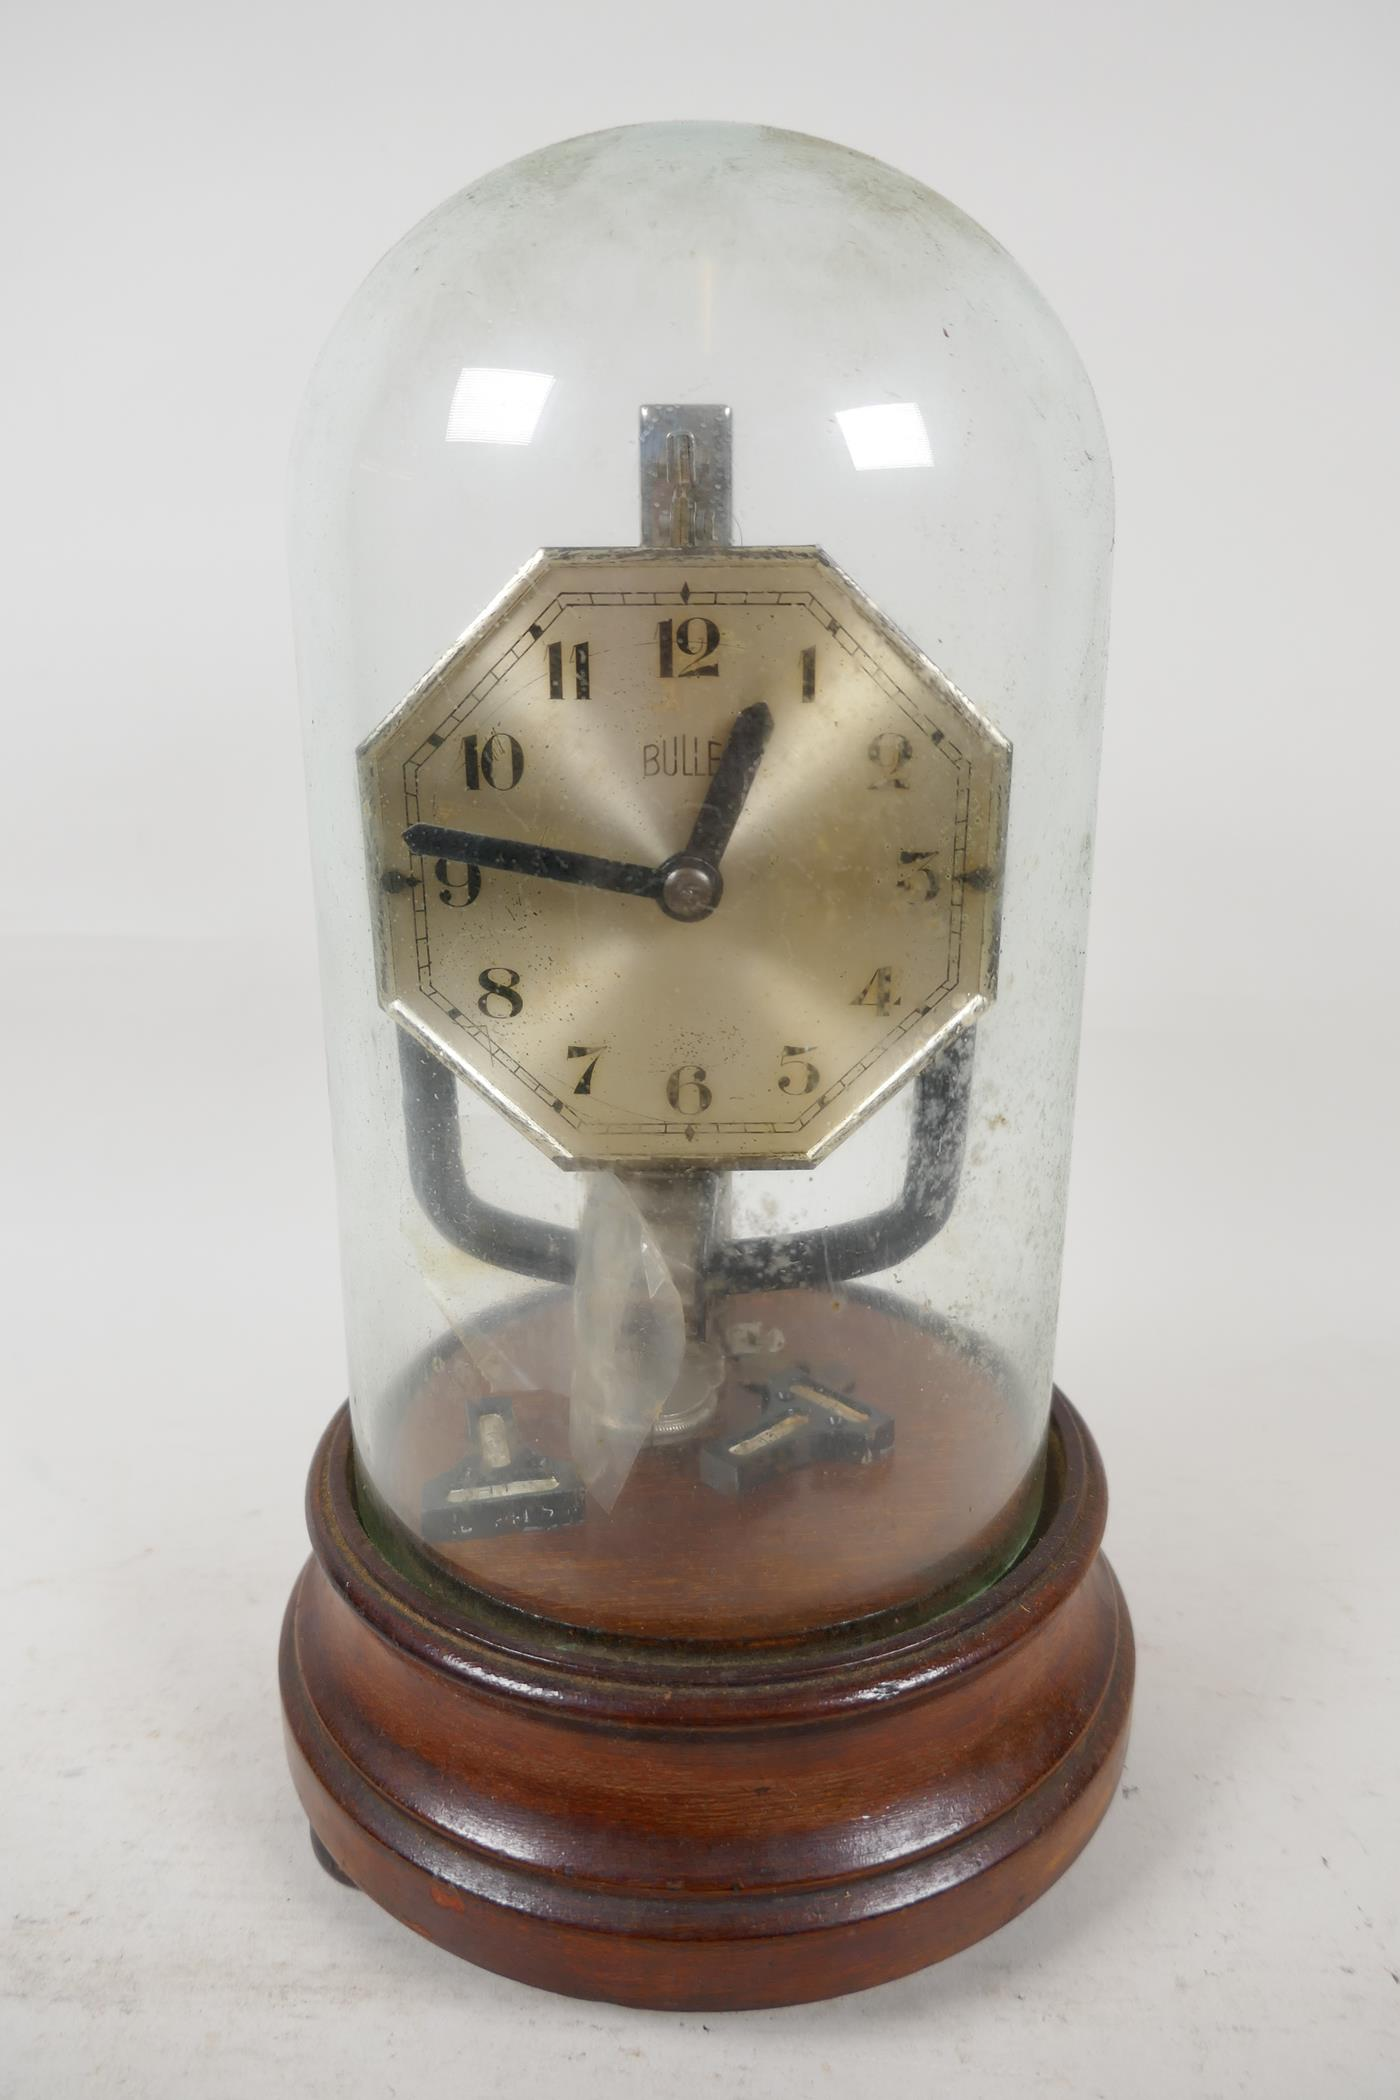 """A Bulle electric mantel clock under glass dome, 10½"""" high - Image 4 of 4"""